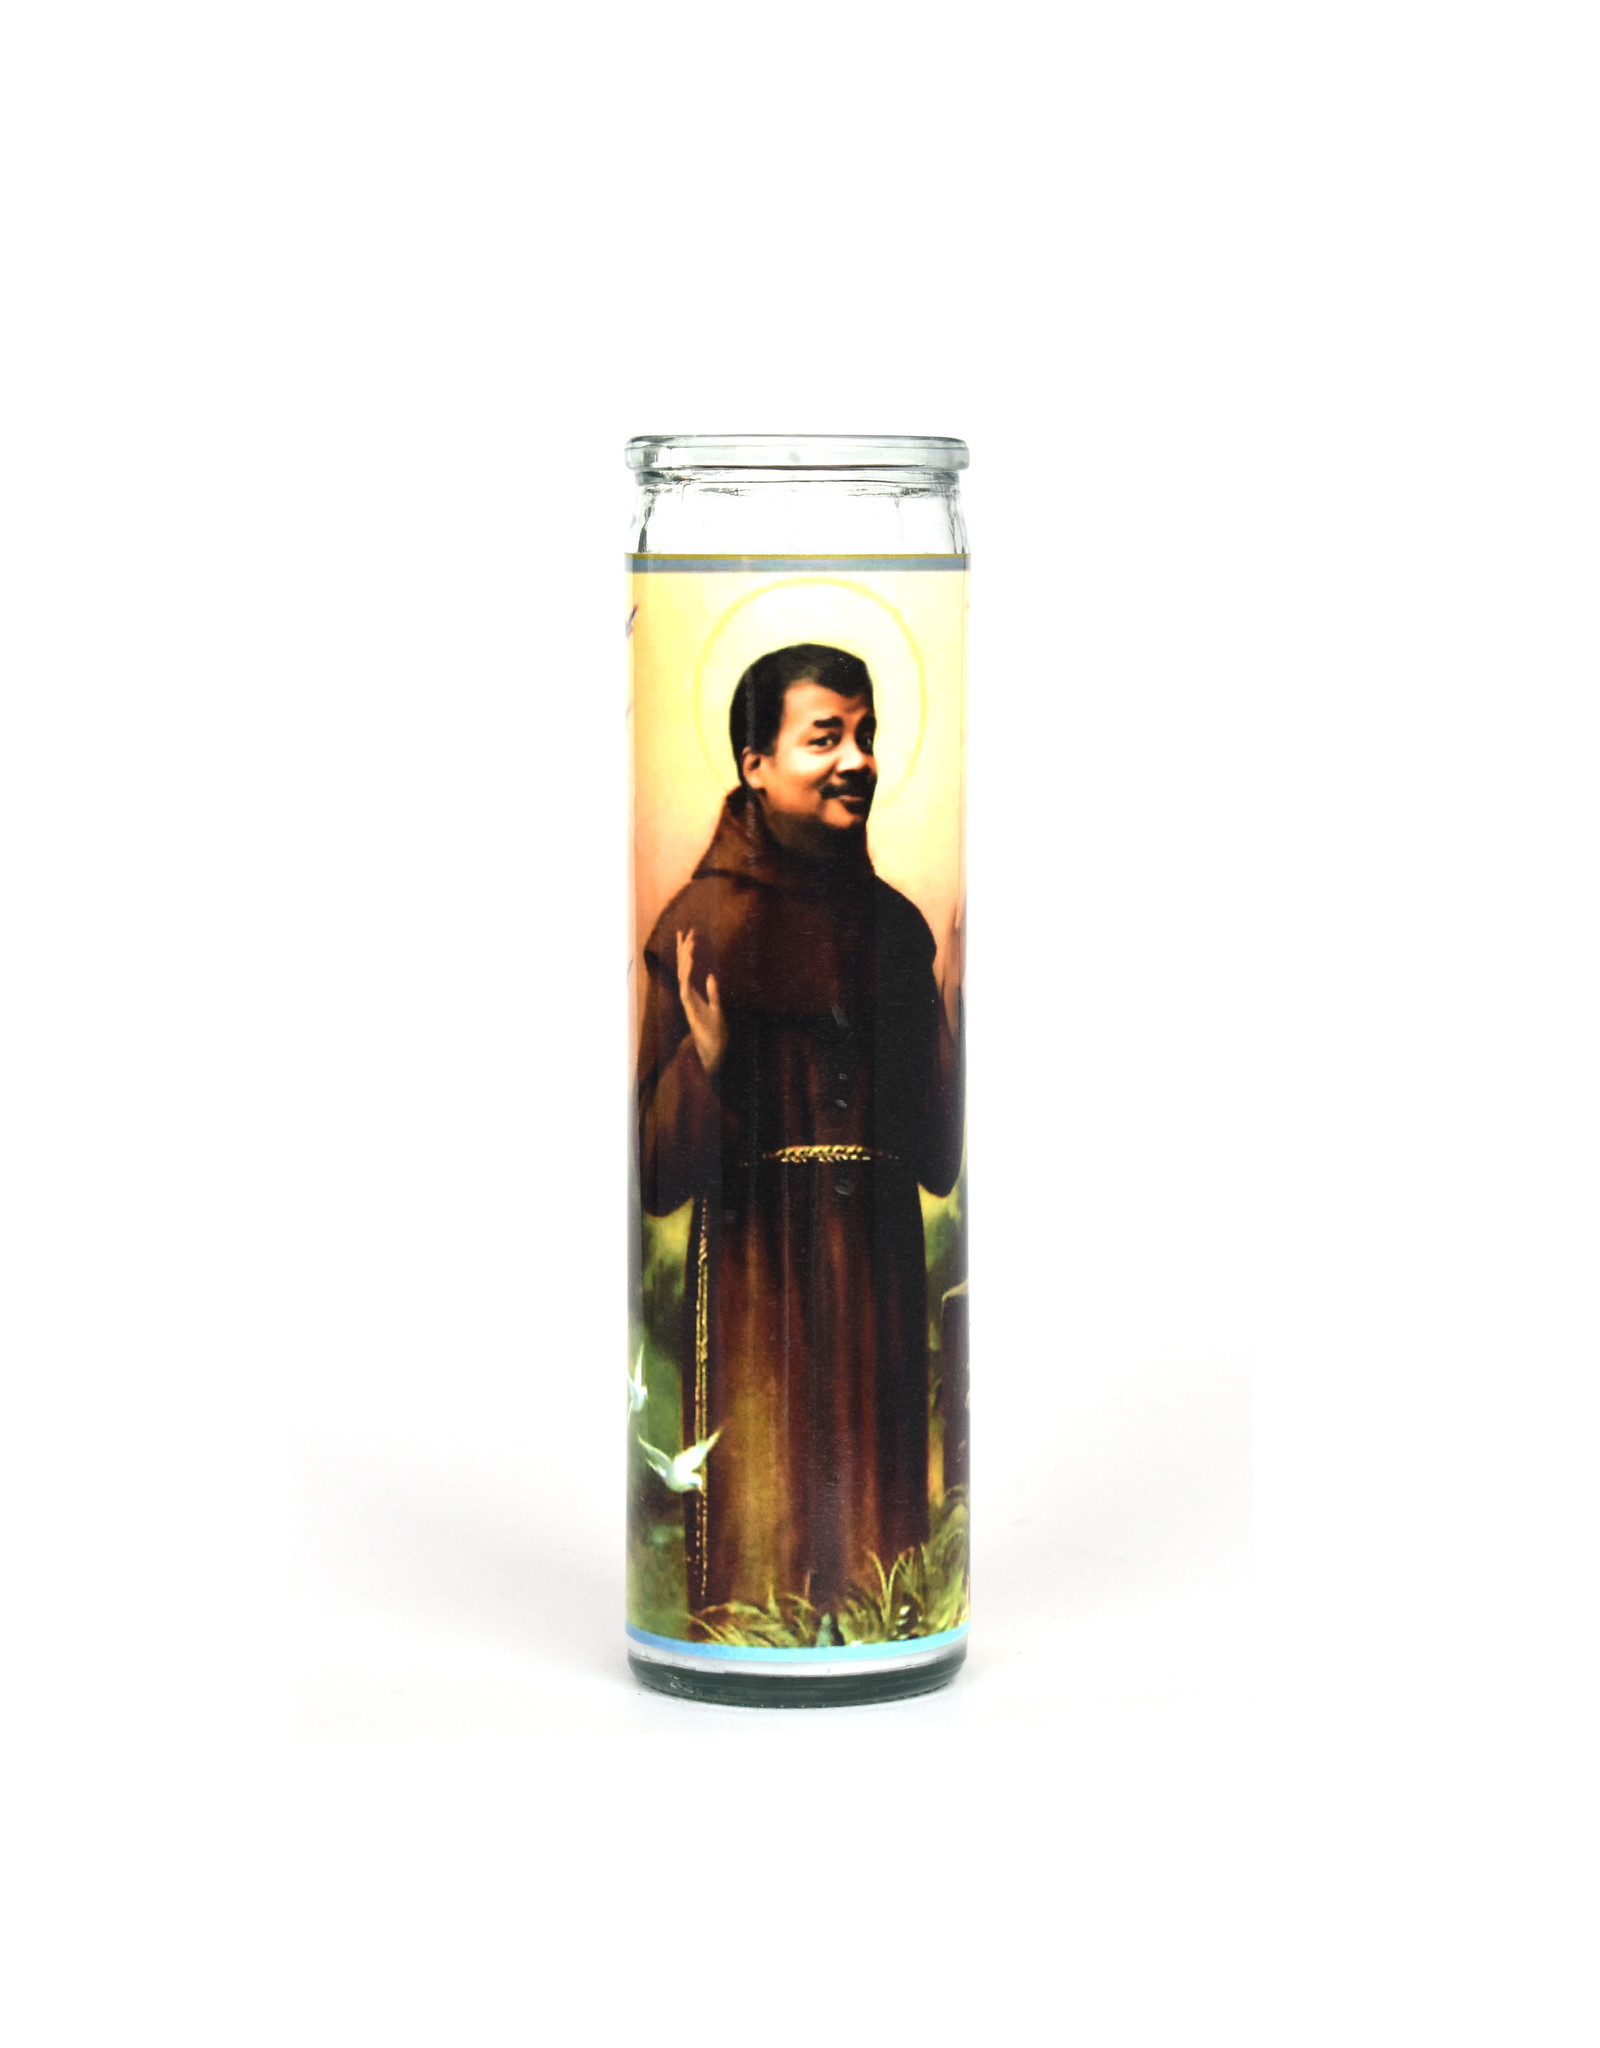 St. Neil Degrasse Tyson Prayer Candle